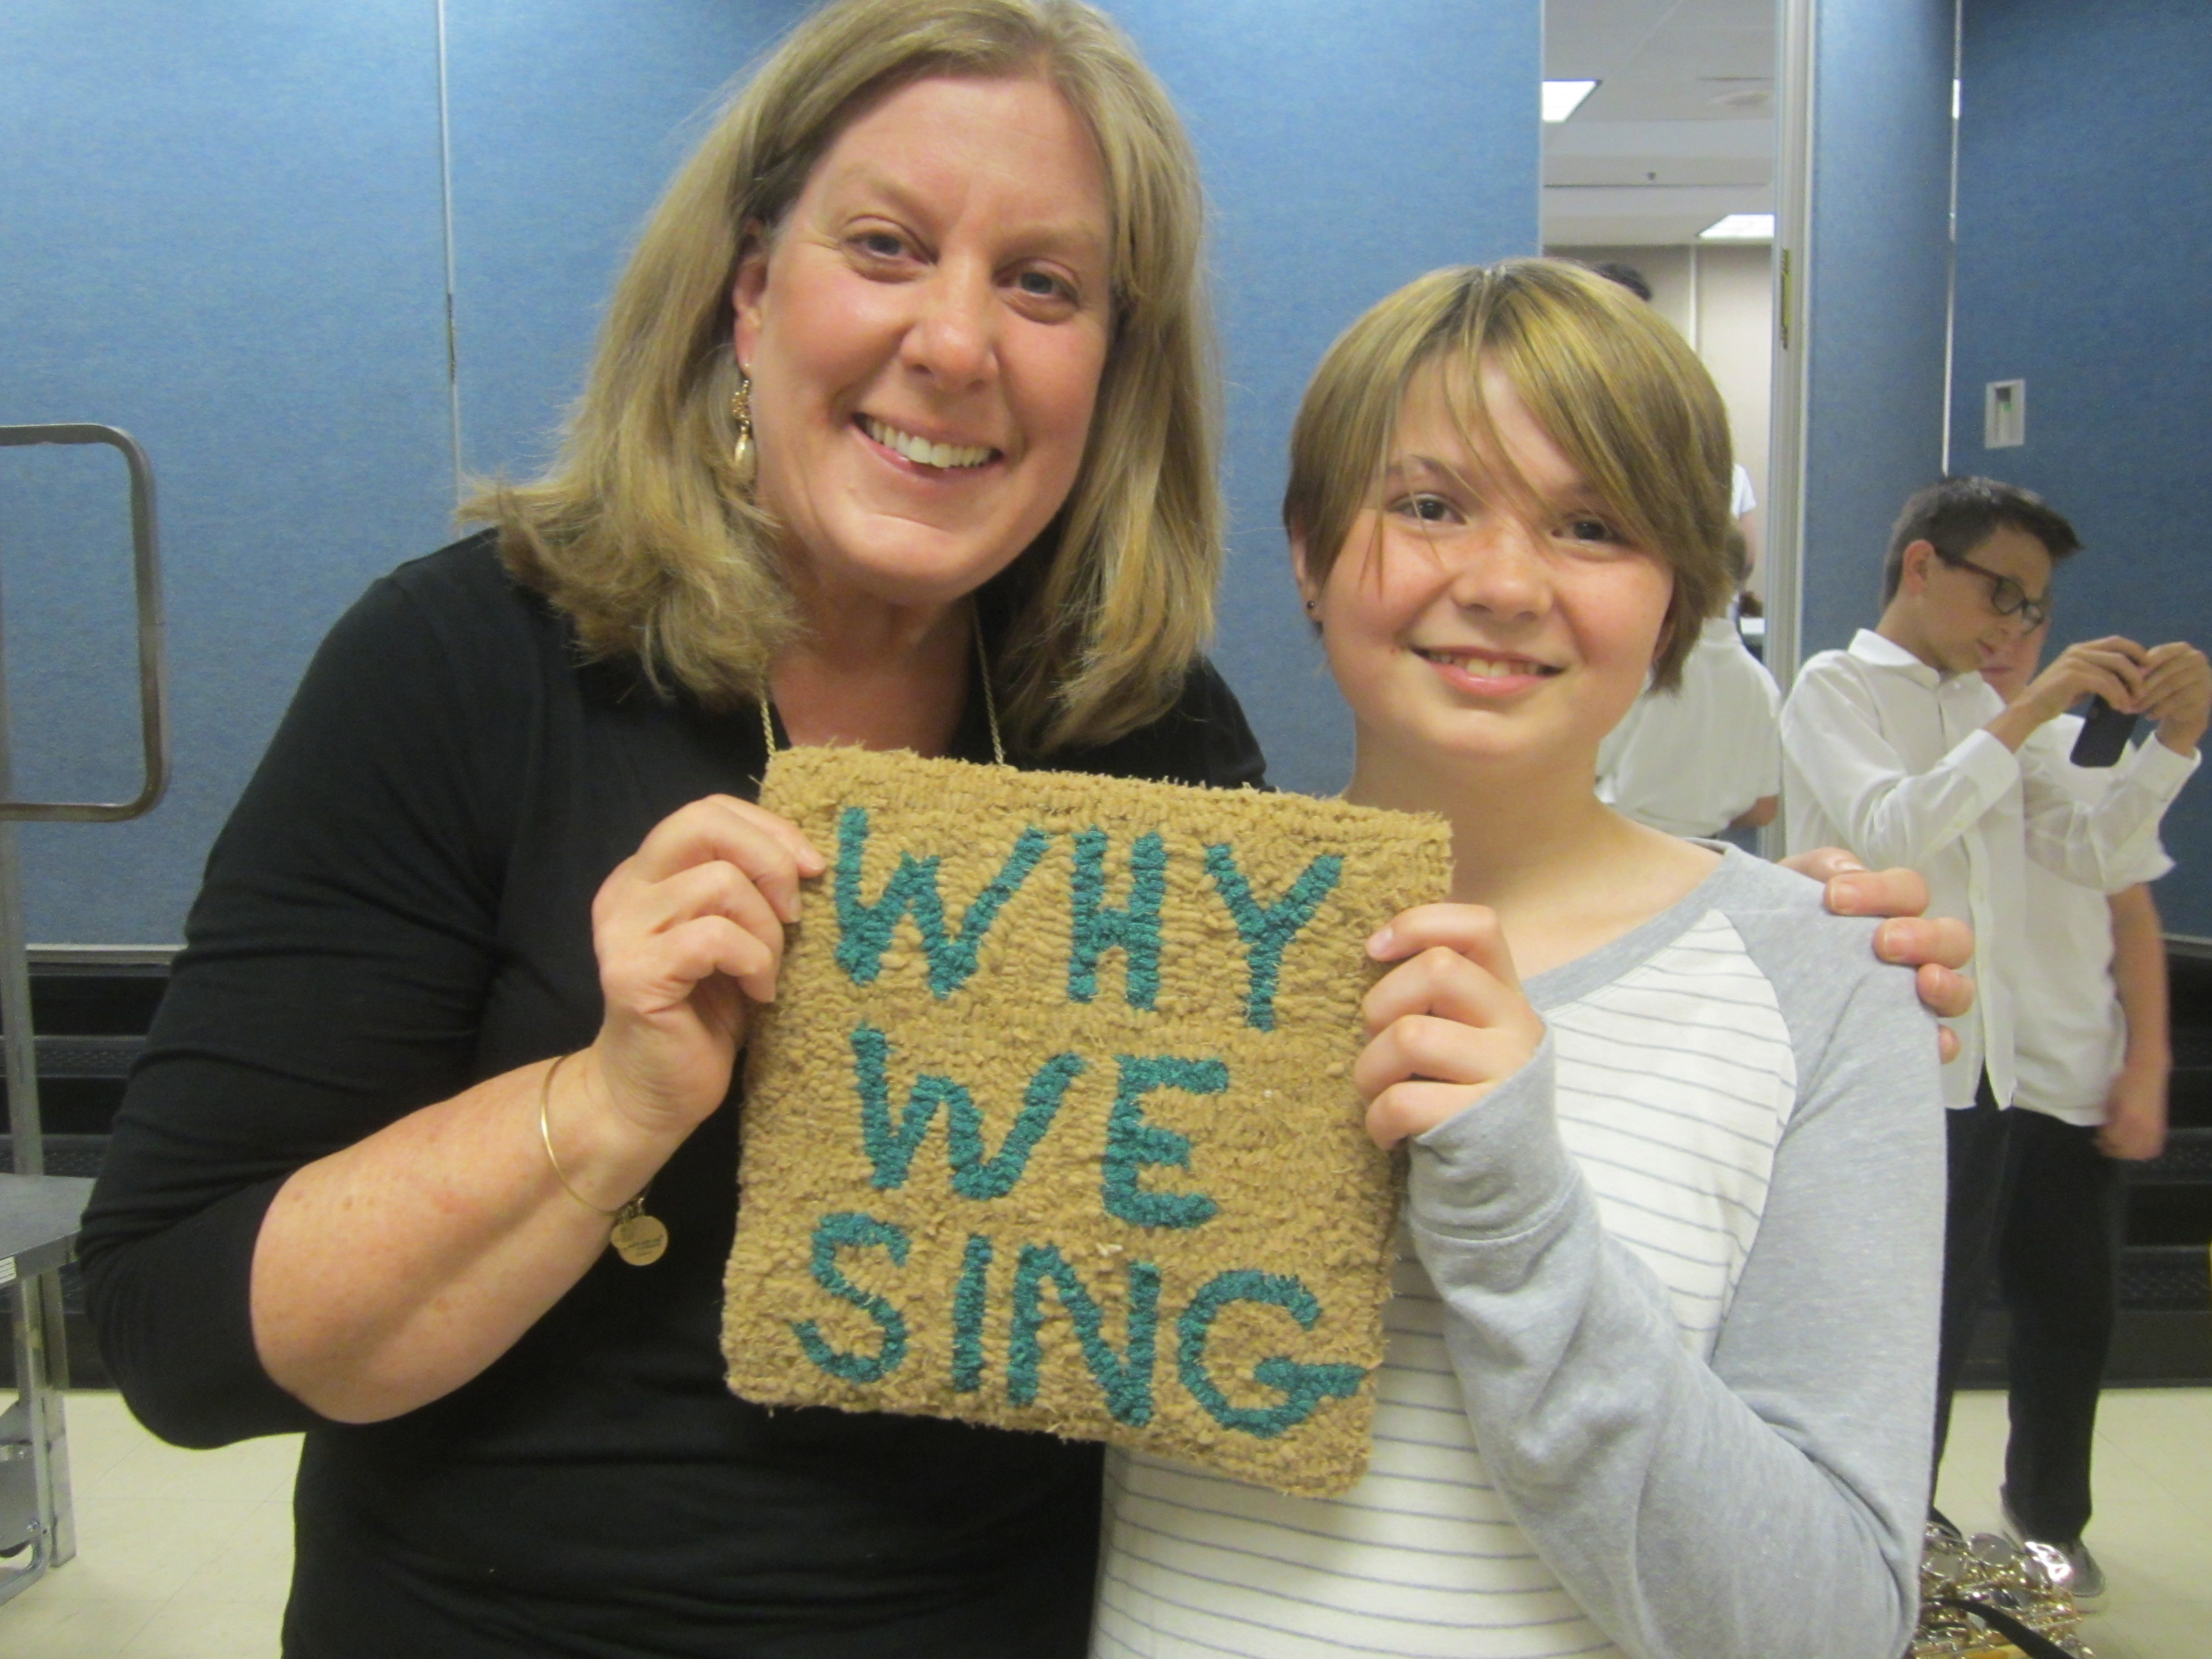 Giving Ms. Anderson the Why We Sing Rug at Year-End Concert